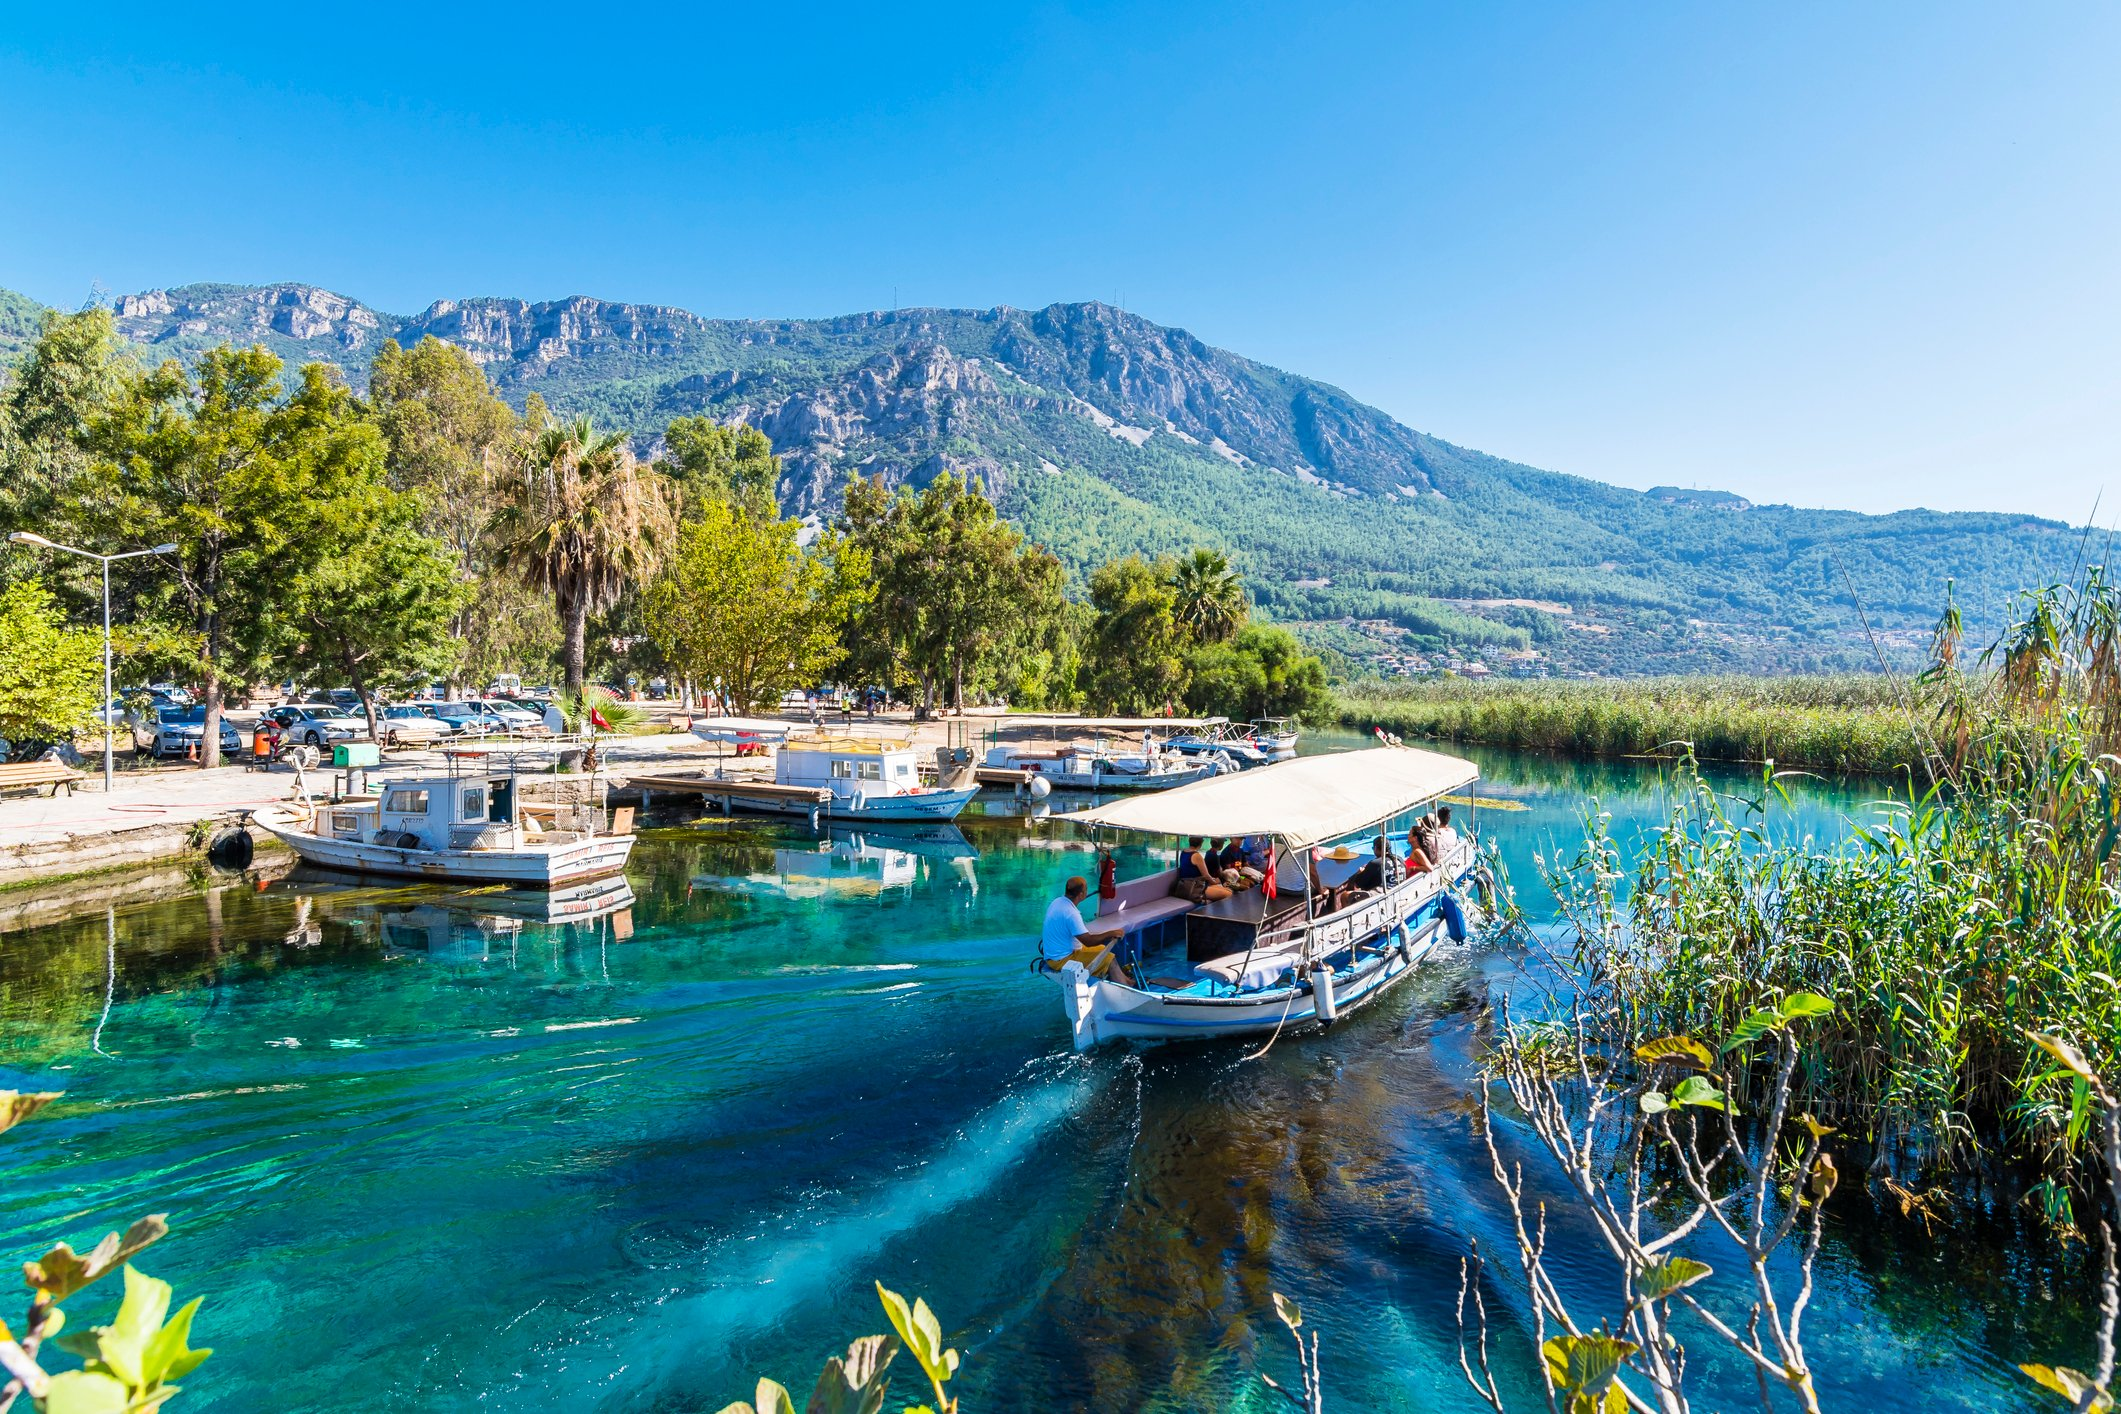 Once you are settled, you can take a tour on the Azmak River in Akyaka village. (iStock Photo)